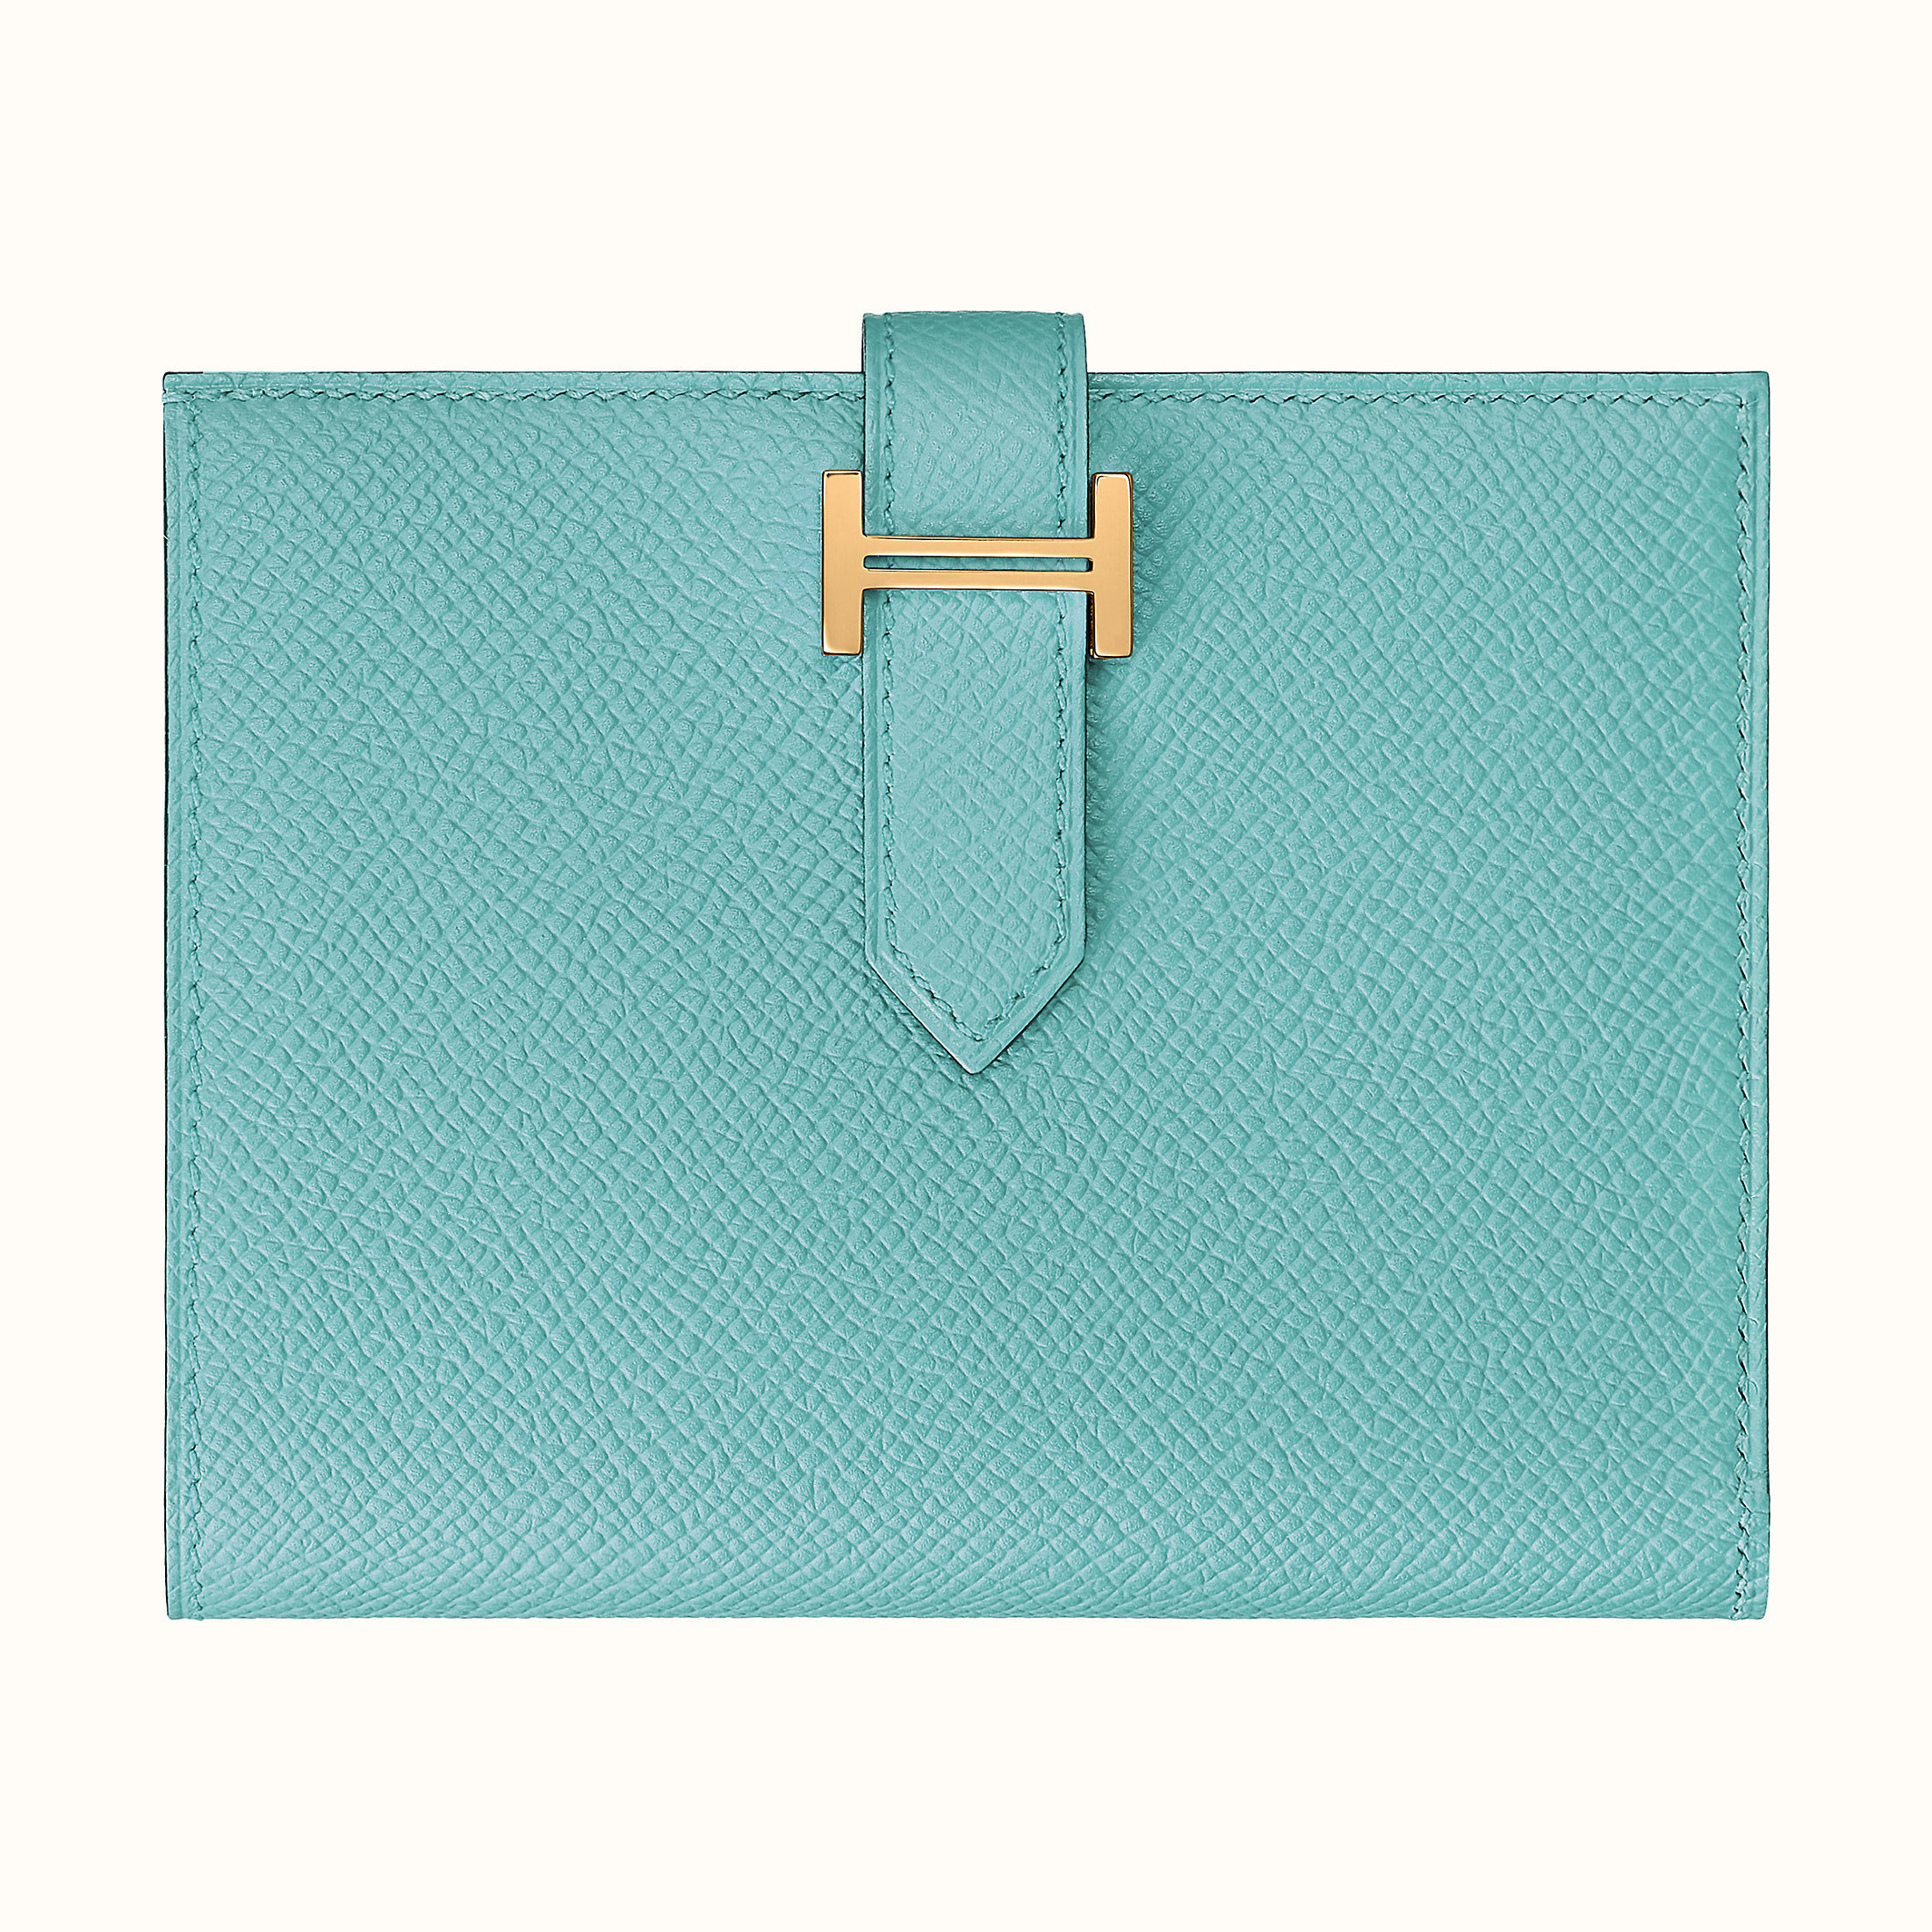 shop hermes wallets & card holders